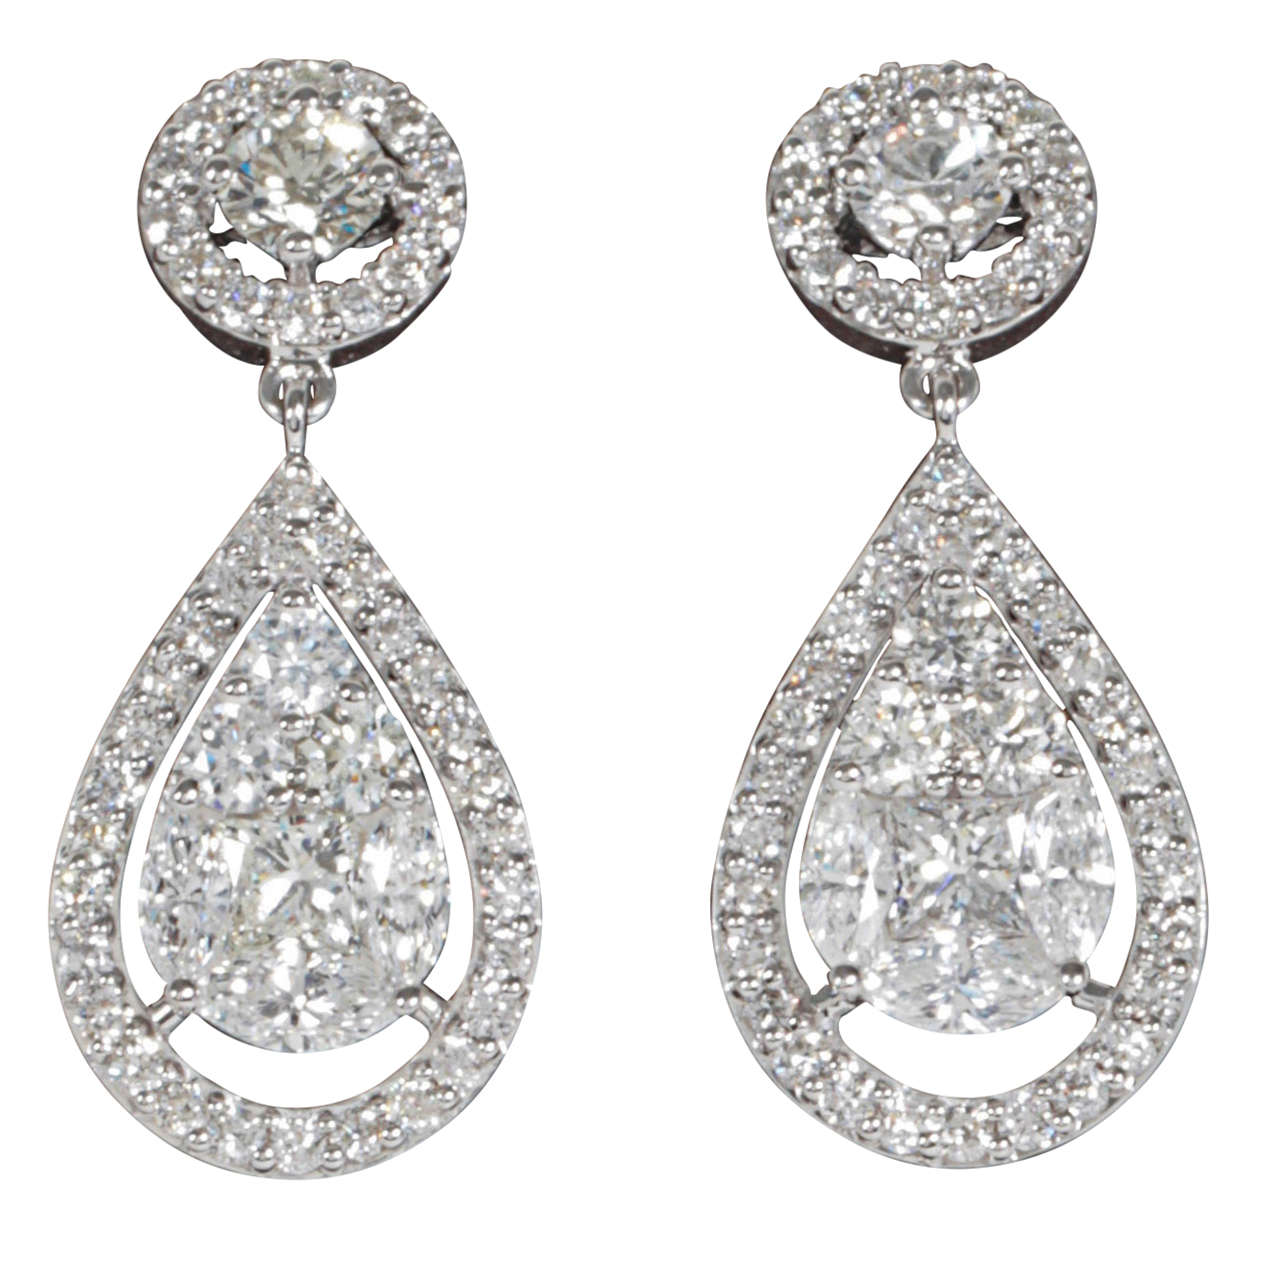 Elegant Illusion Diamond Dangle Earrings For Sale at 1stdibs 36b4fbb156